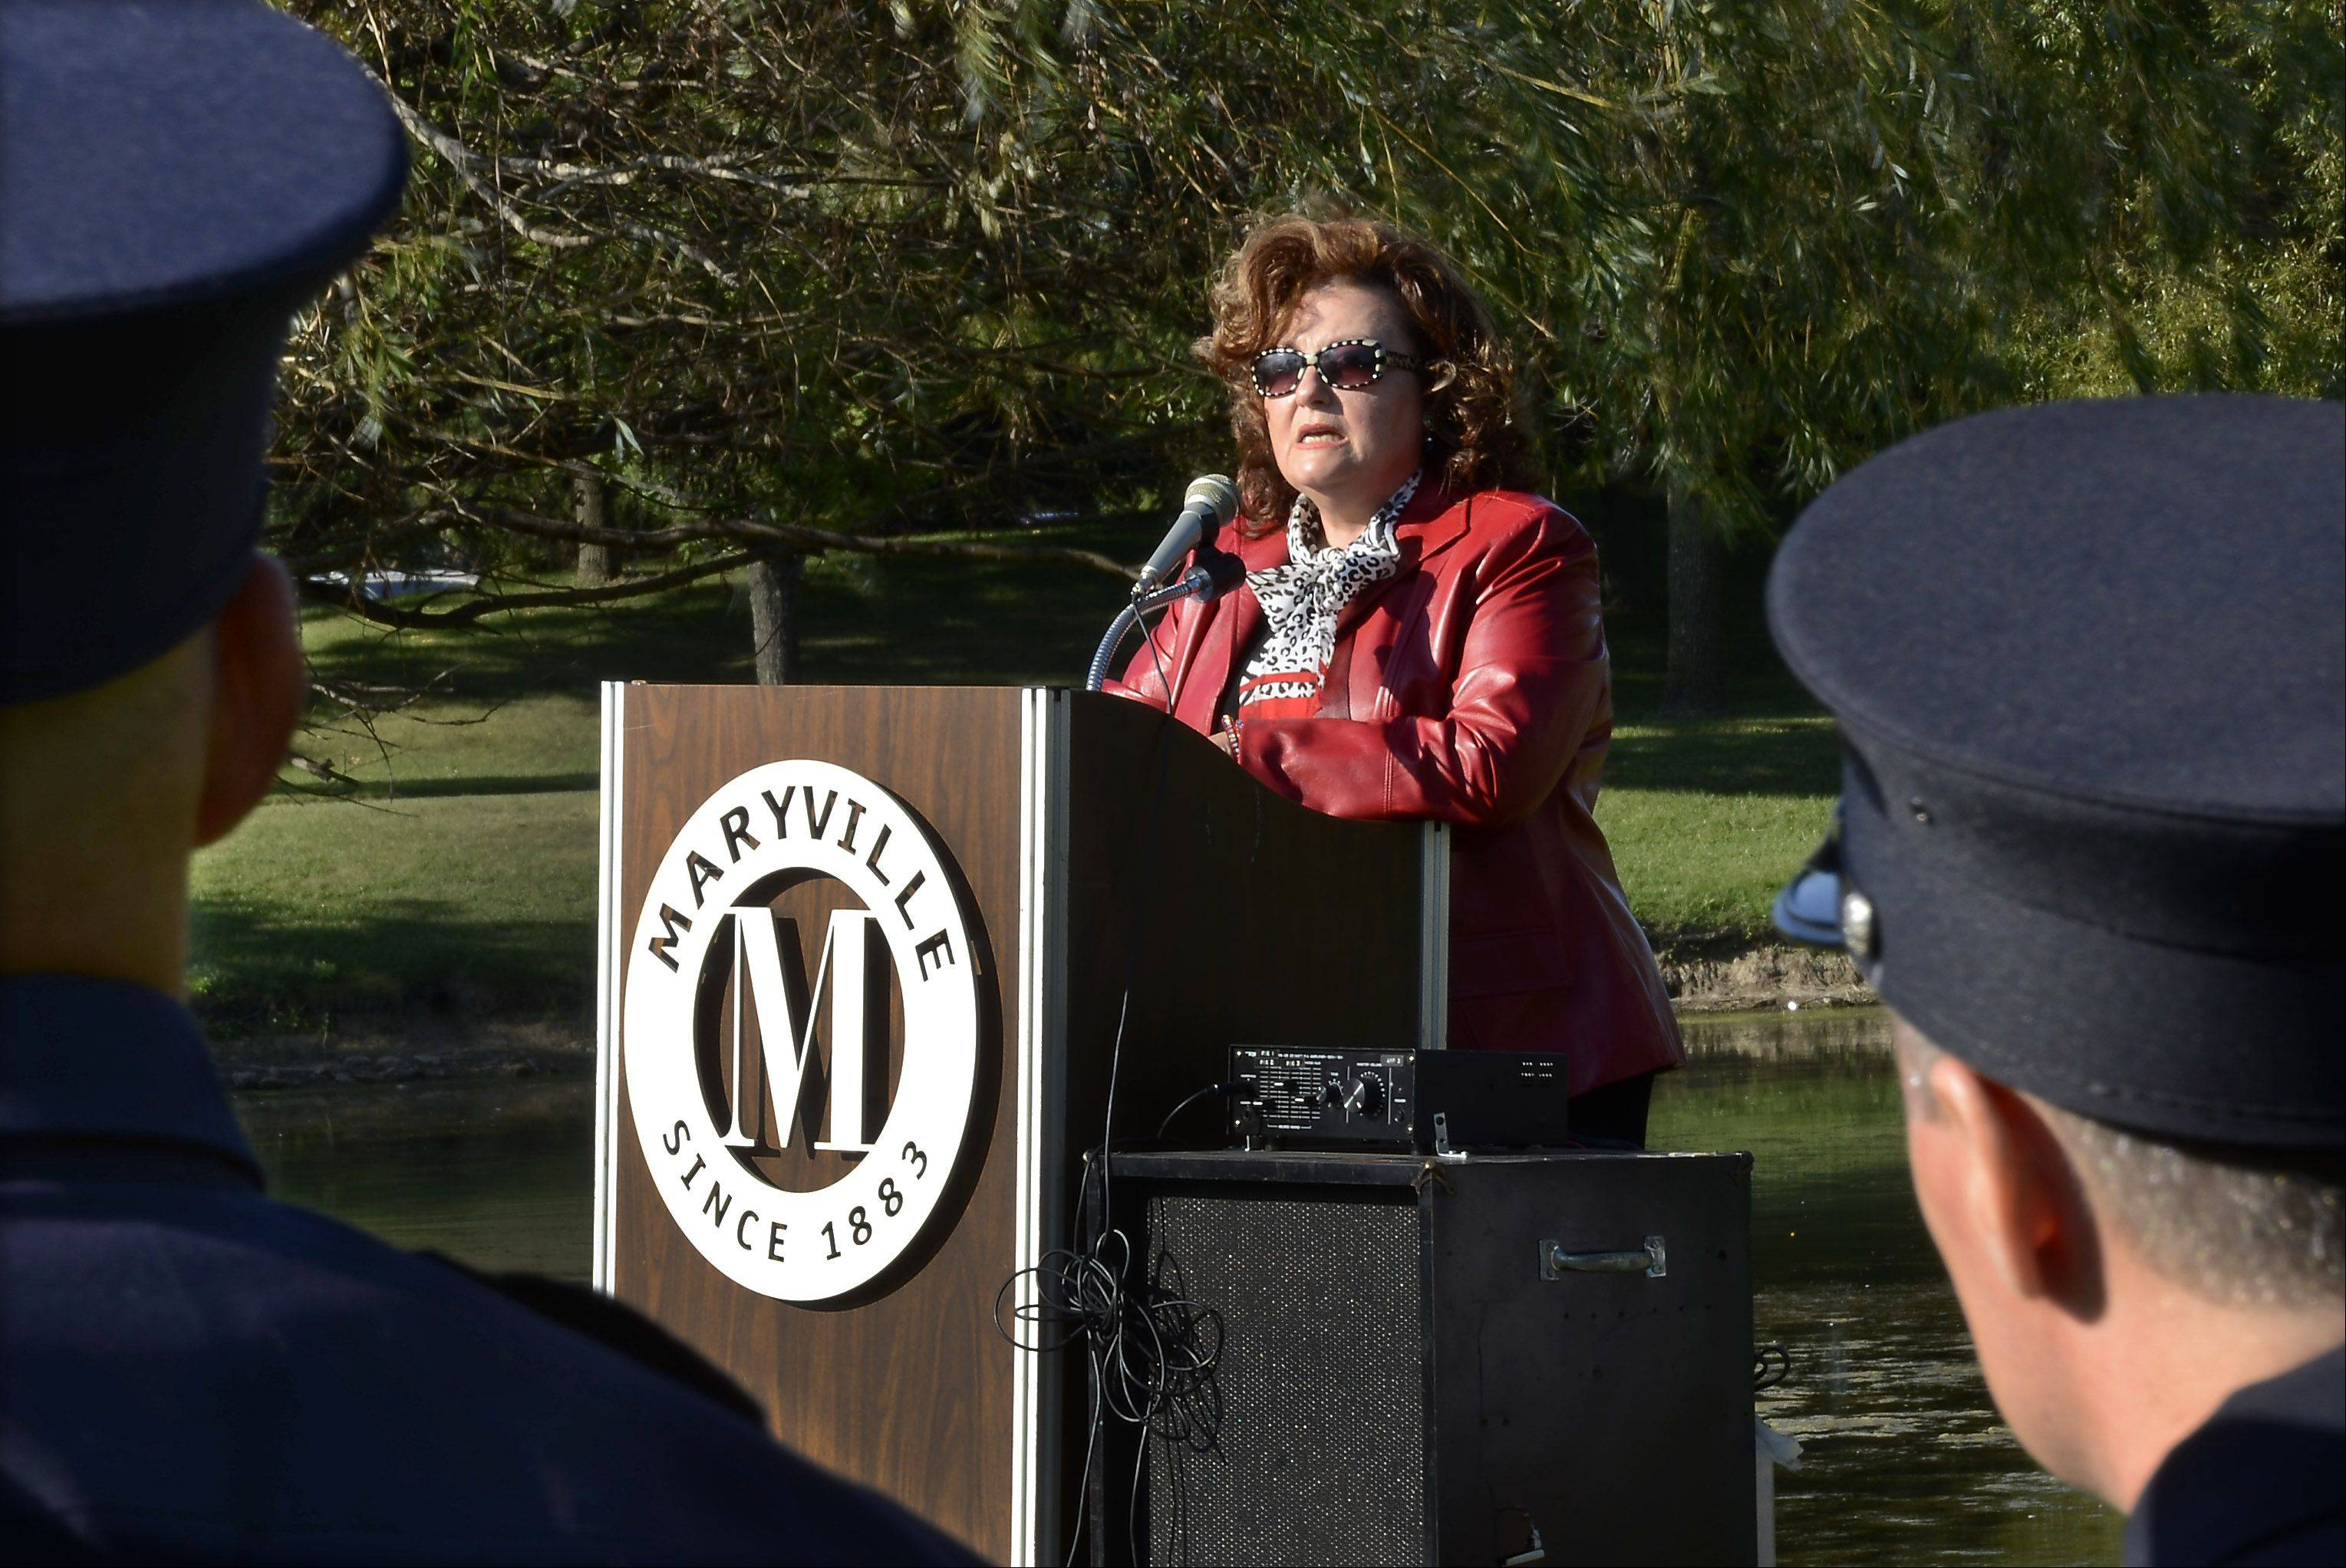 Firefighters listen as former Palatine Mayor Rita Mullins remembers landing in Washington D.C. moments after the Pentagon had been hit by a passenger jet killing all on board and 125 military personnel on Sept. 11, 2000. She spoke during a 9/11 Patriot Day celebration at Maryville Academy in Des Plaines.